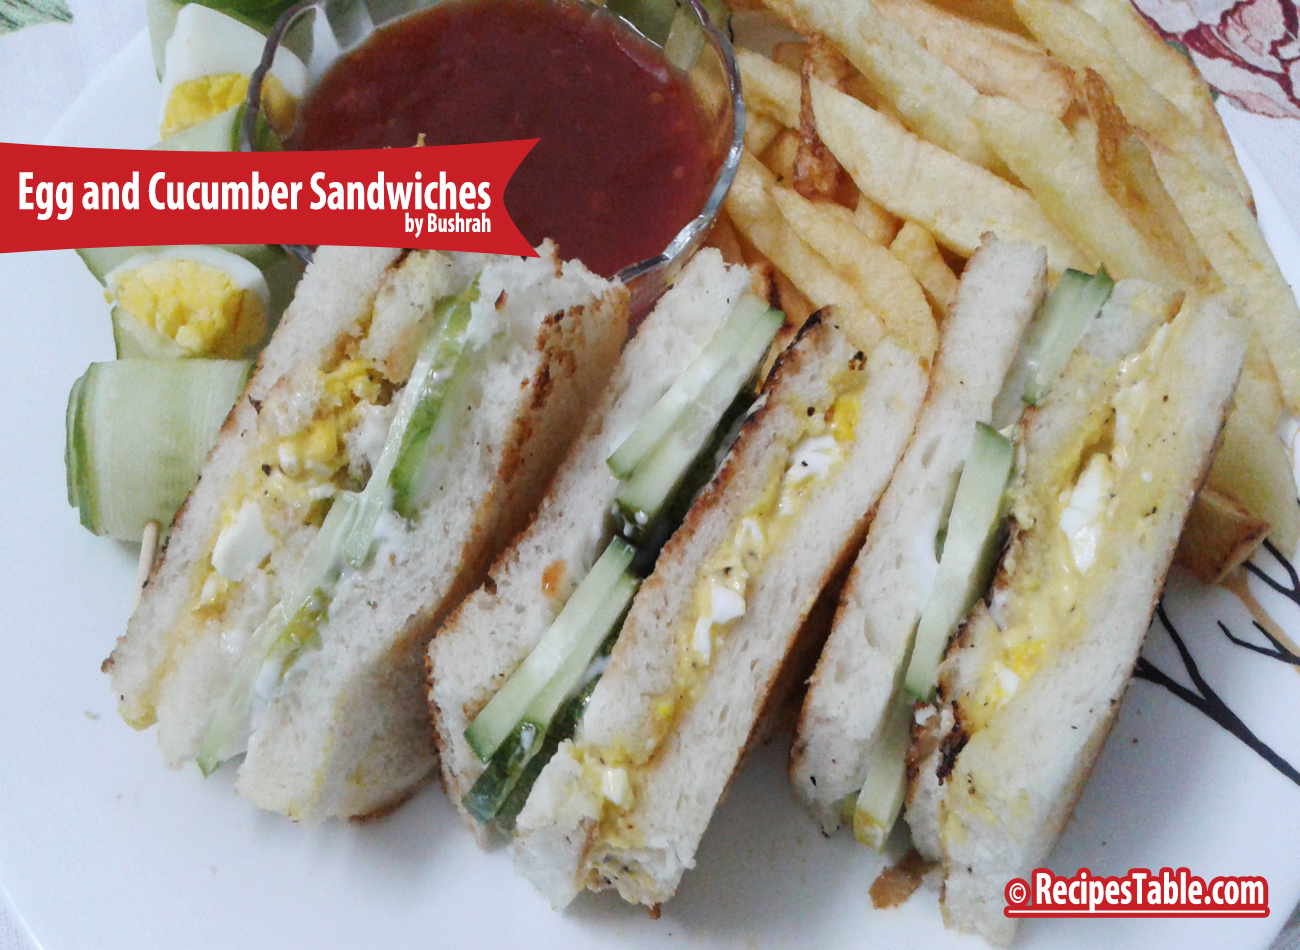 Egg and Cucumber Sandwiches recipe